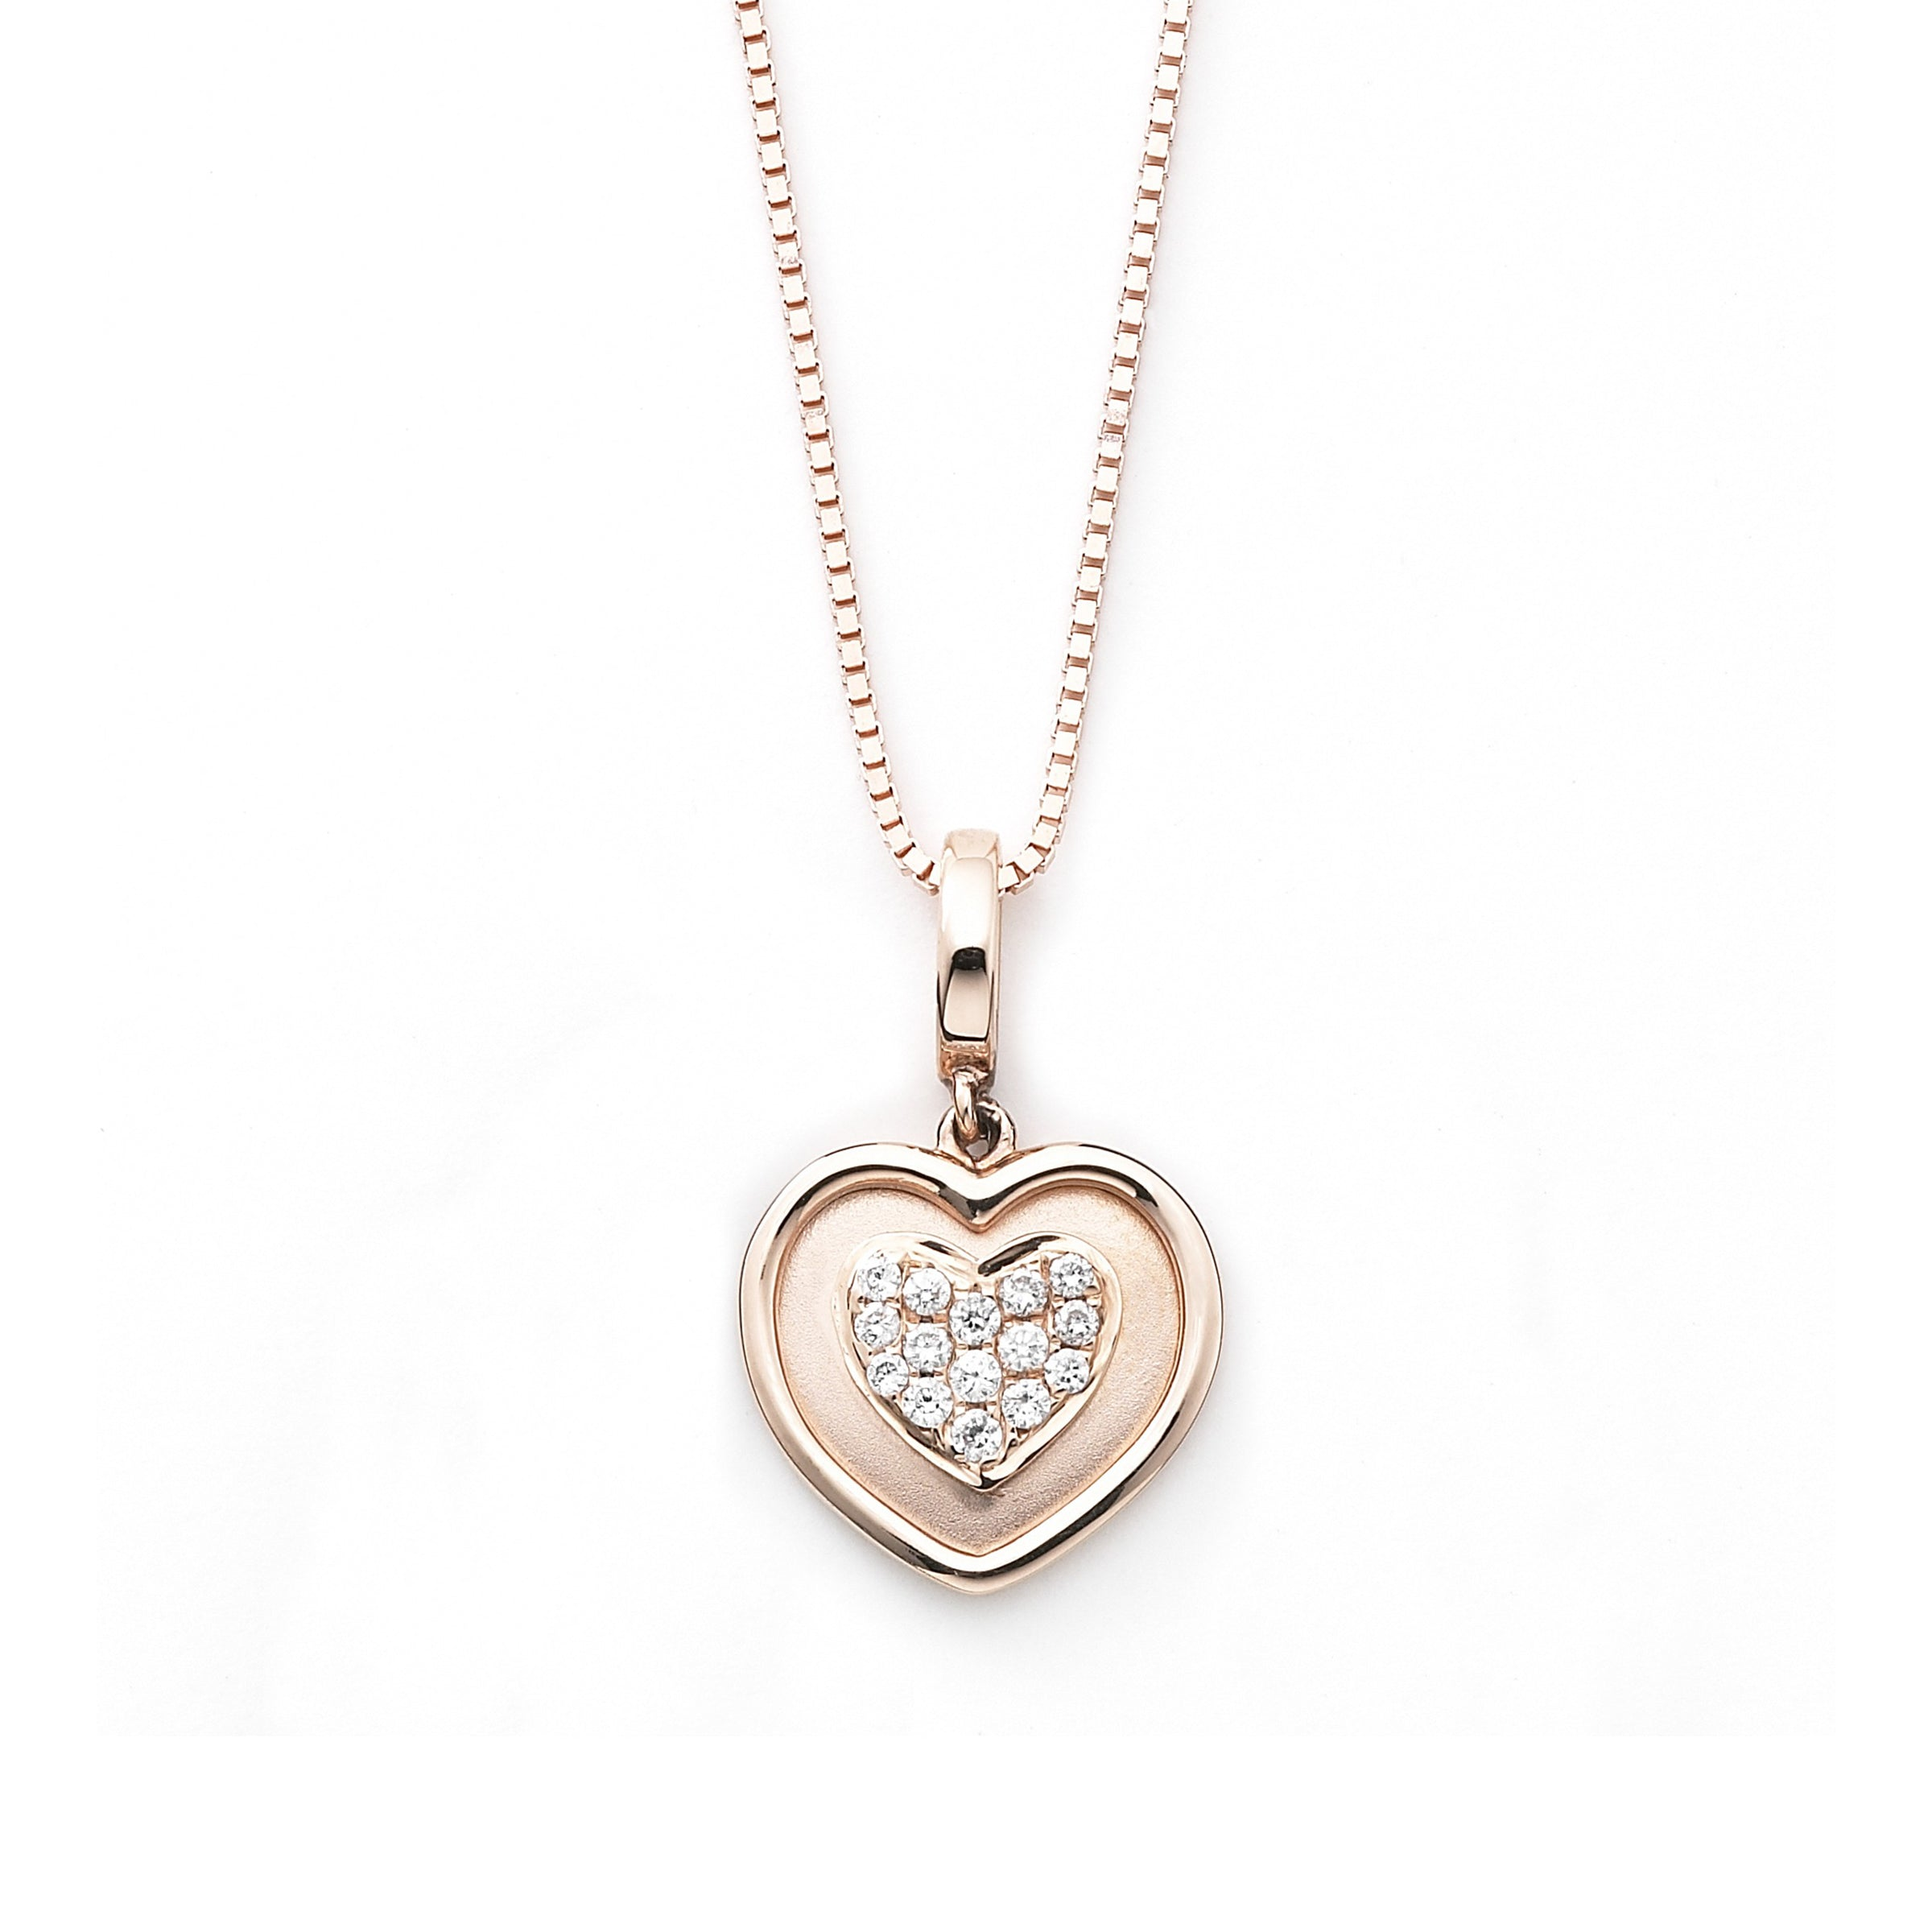 Delicate Rose Gold Heart Pave with Diamonds, 14K, 16 Inch Chain